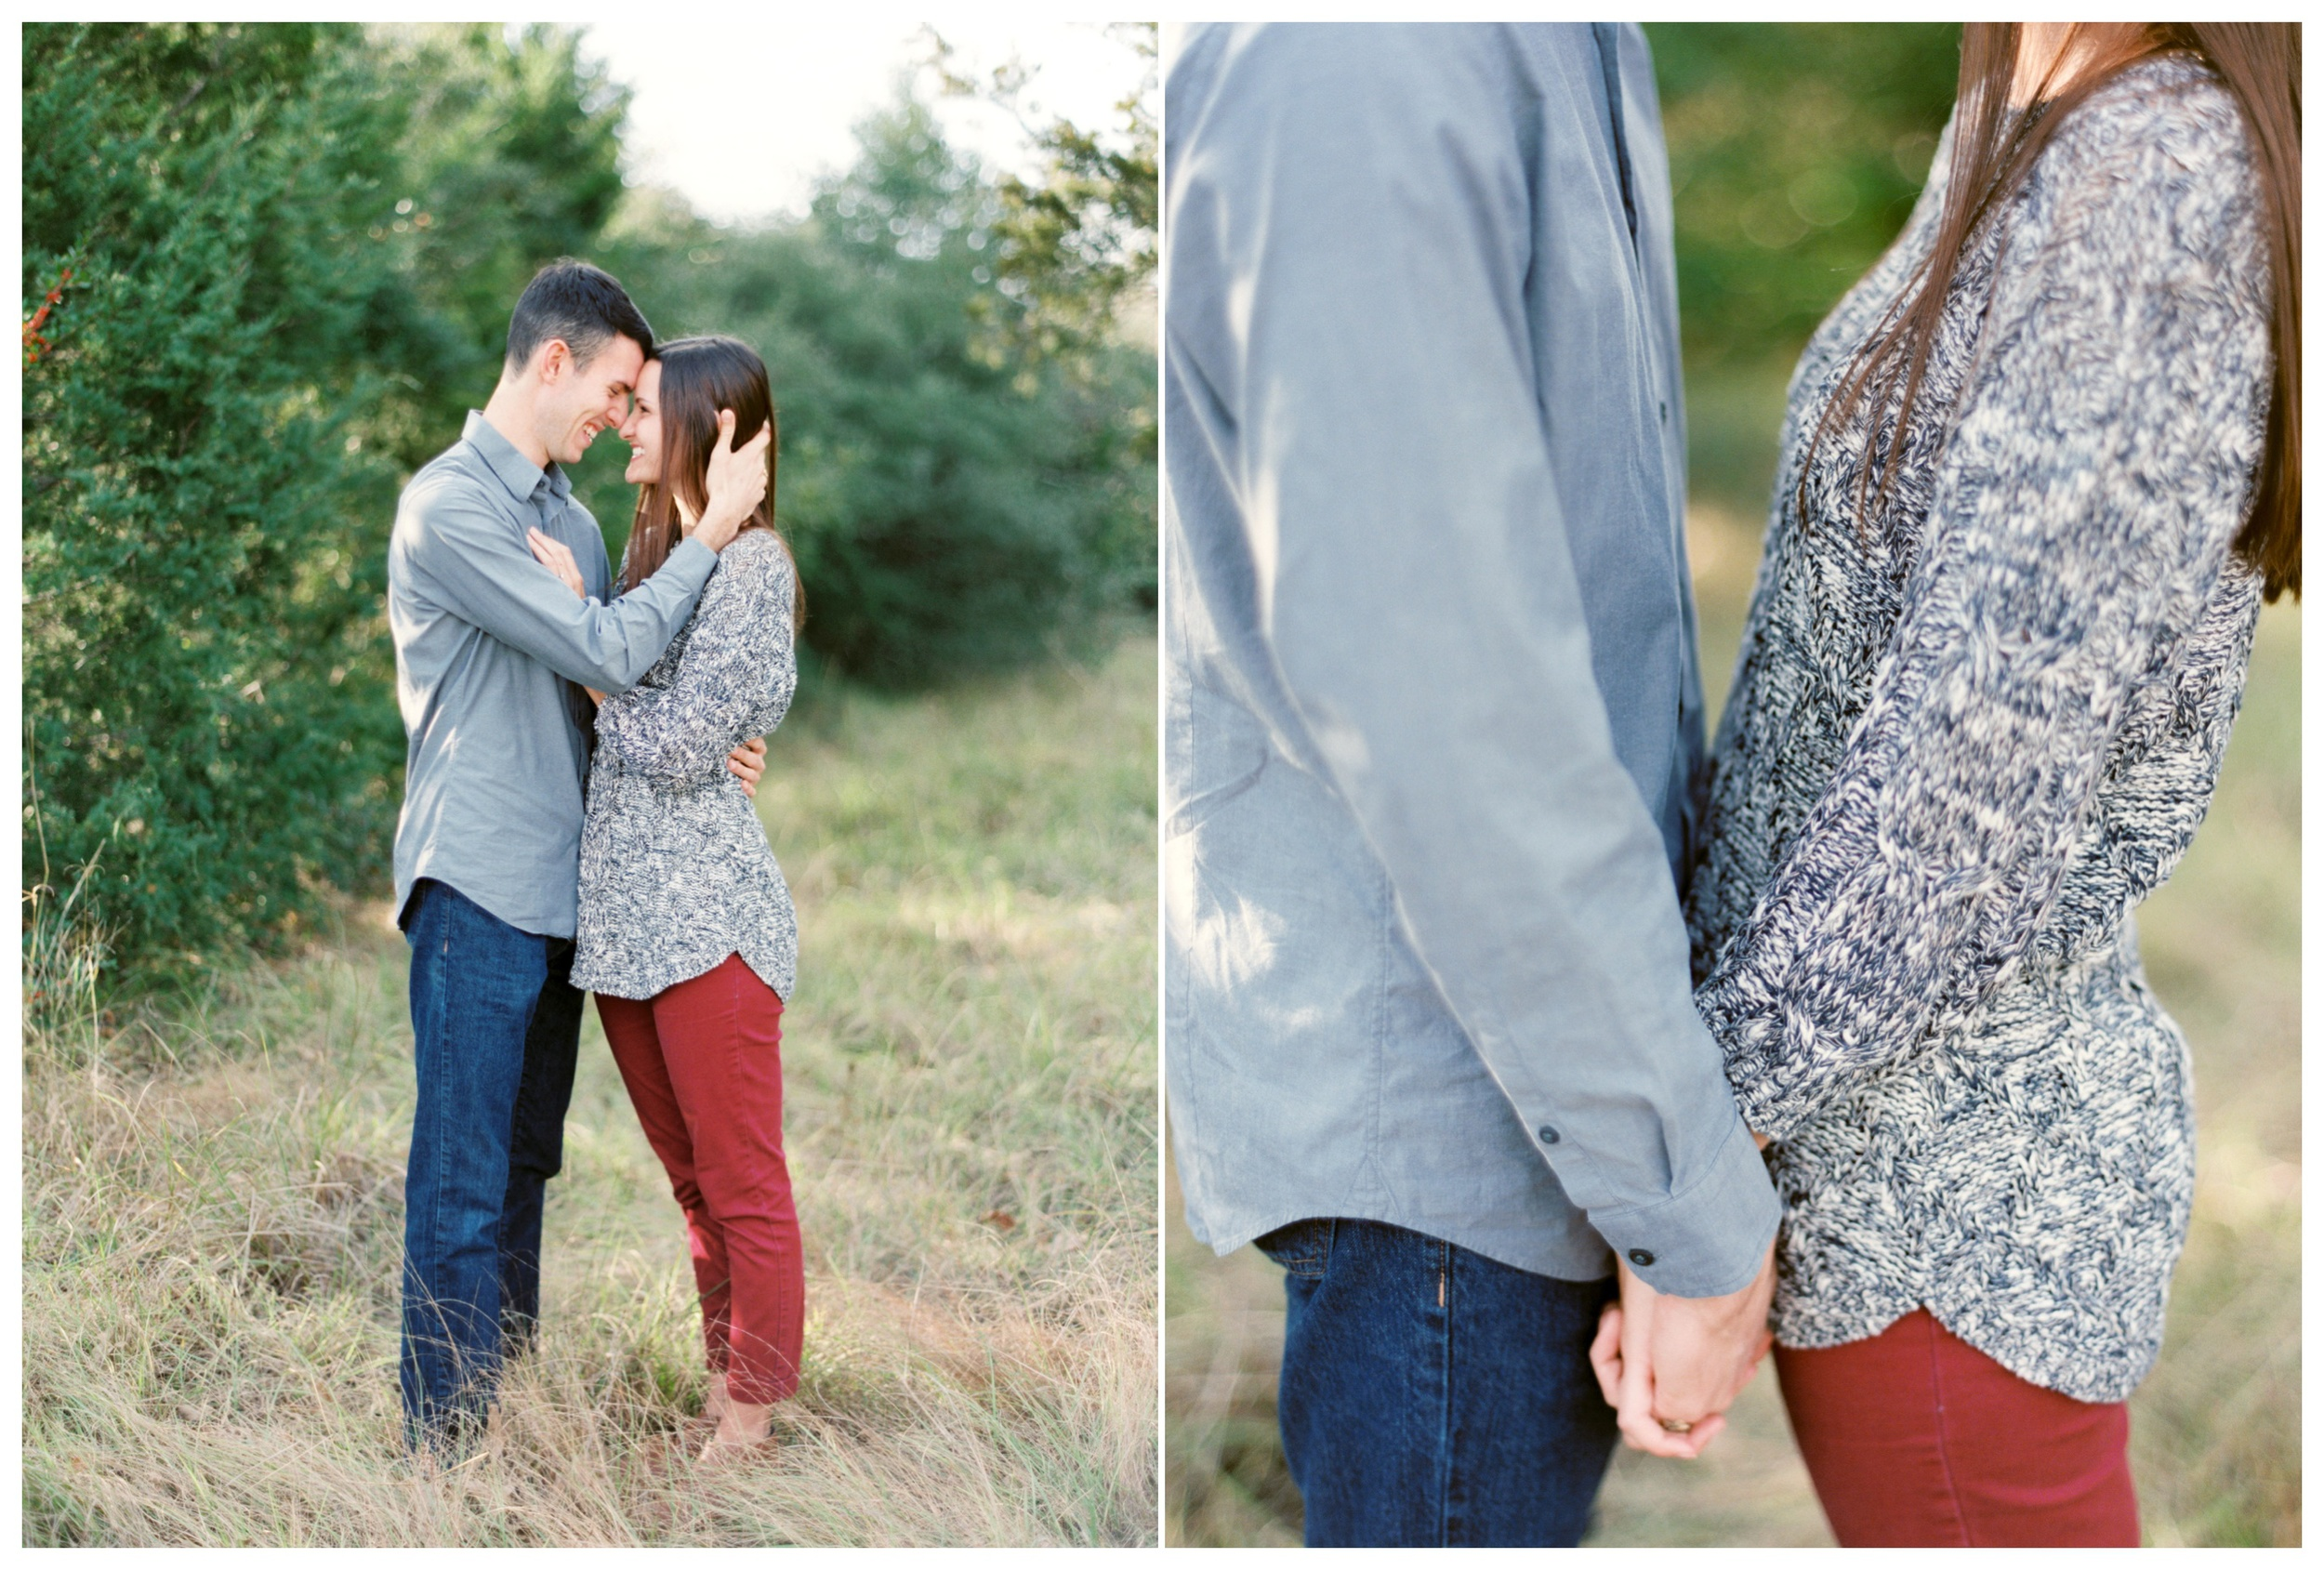 Sarah Best Photography - Brittany & Jonathan's Engagements-183_STP.jpg